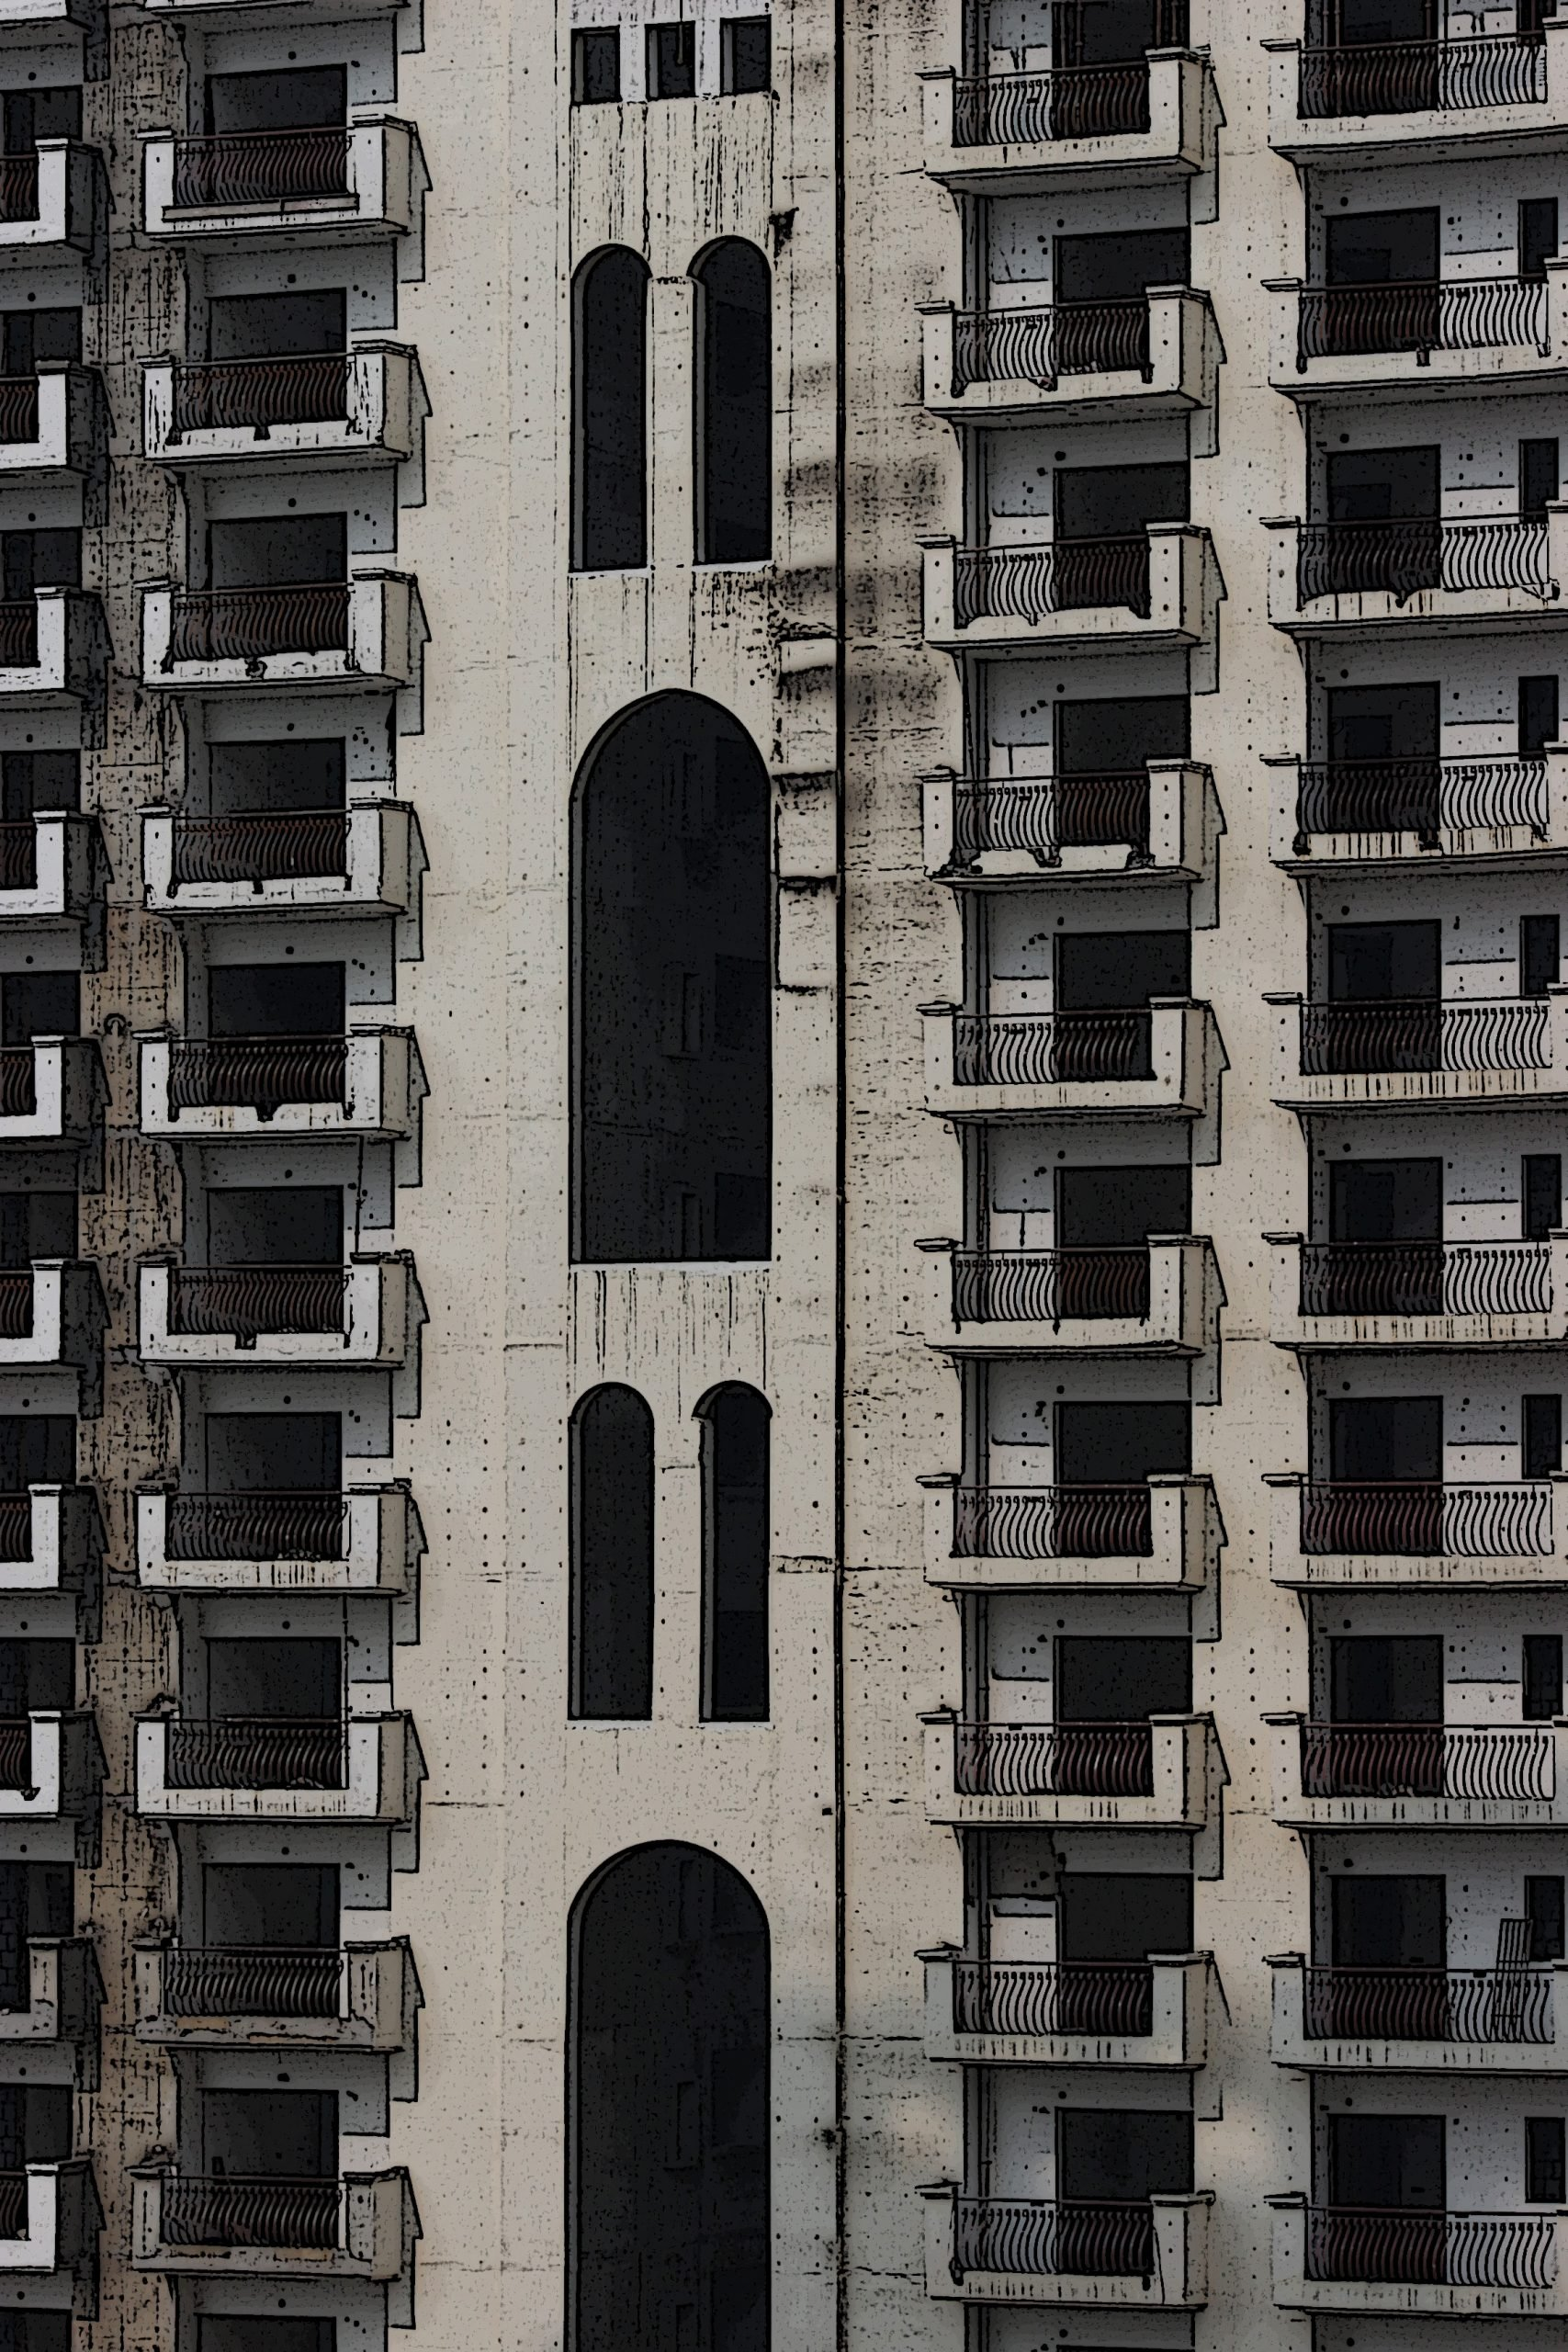 Portrait of apartments in a building